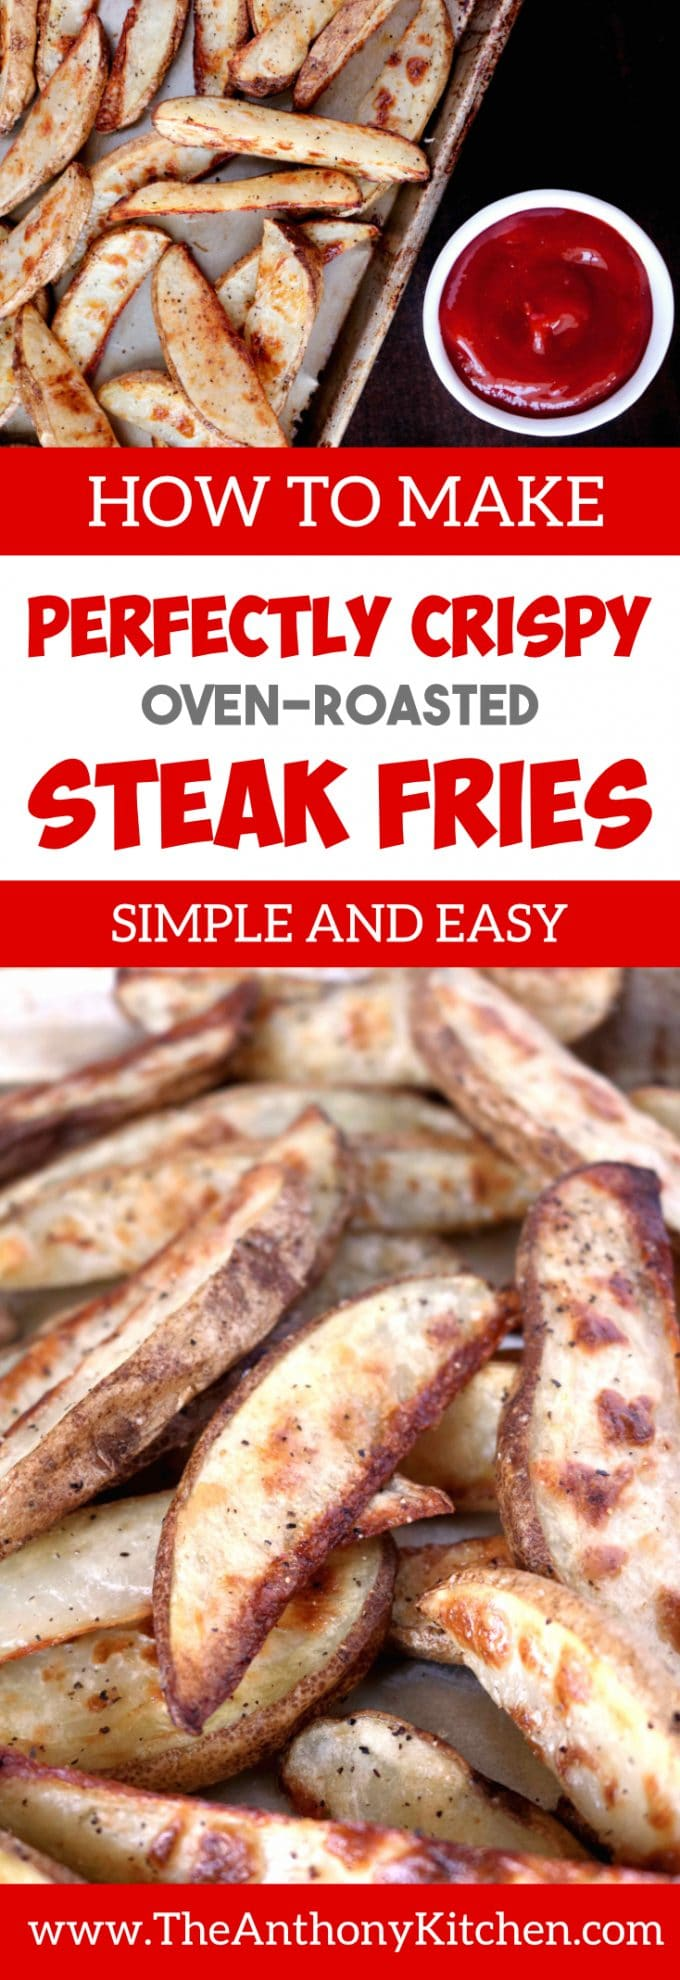 PERFECT OVEN ROASTED STEAK FRIES